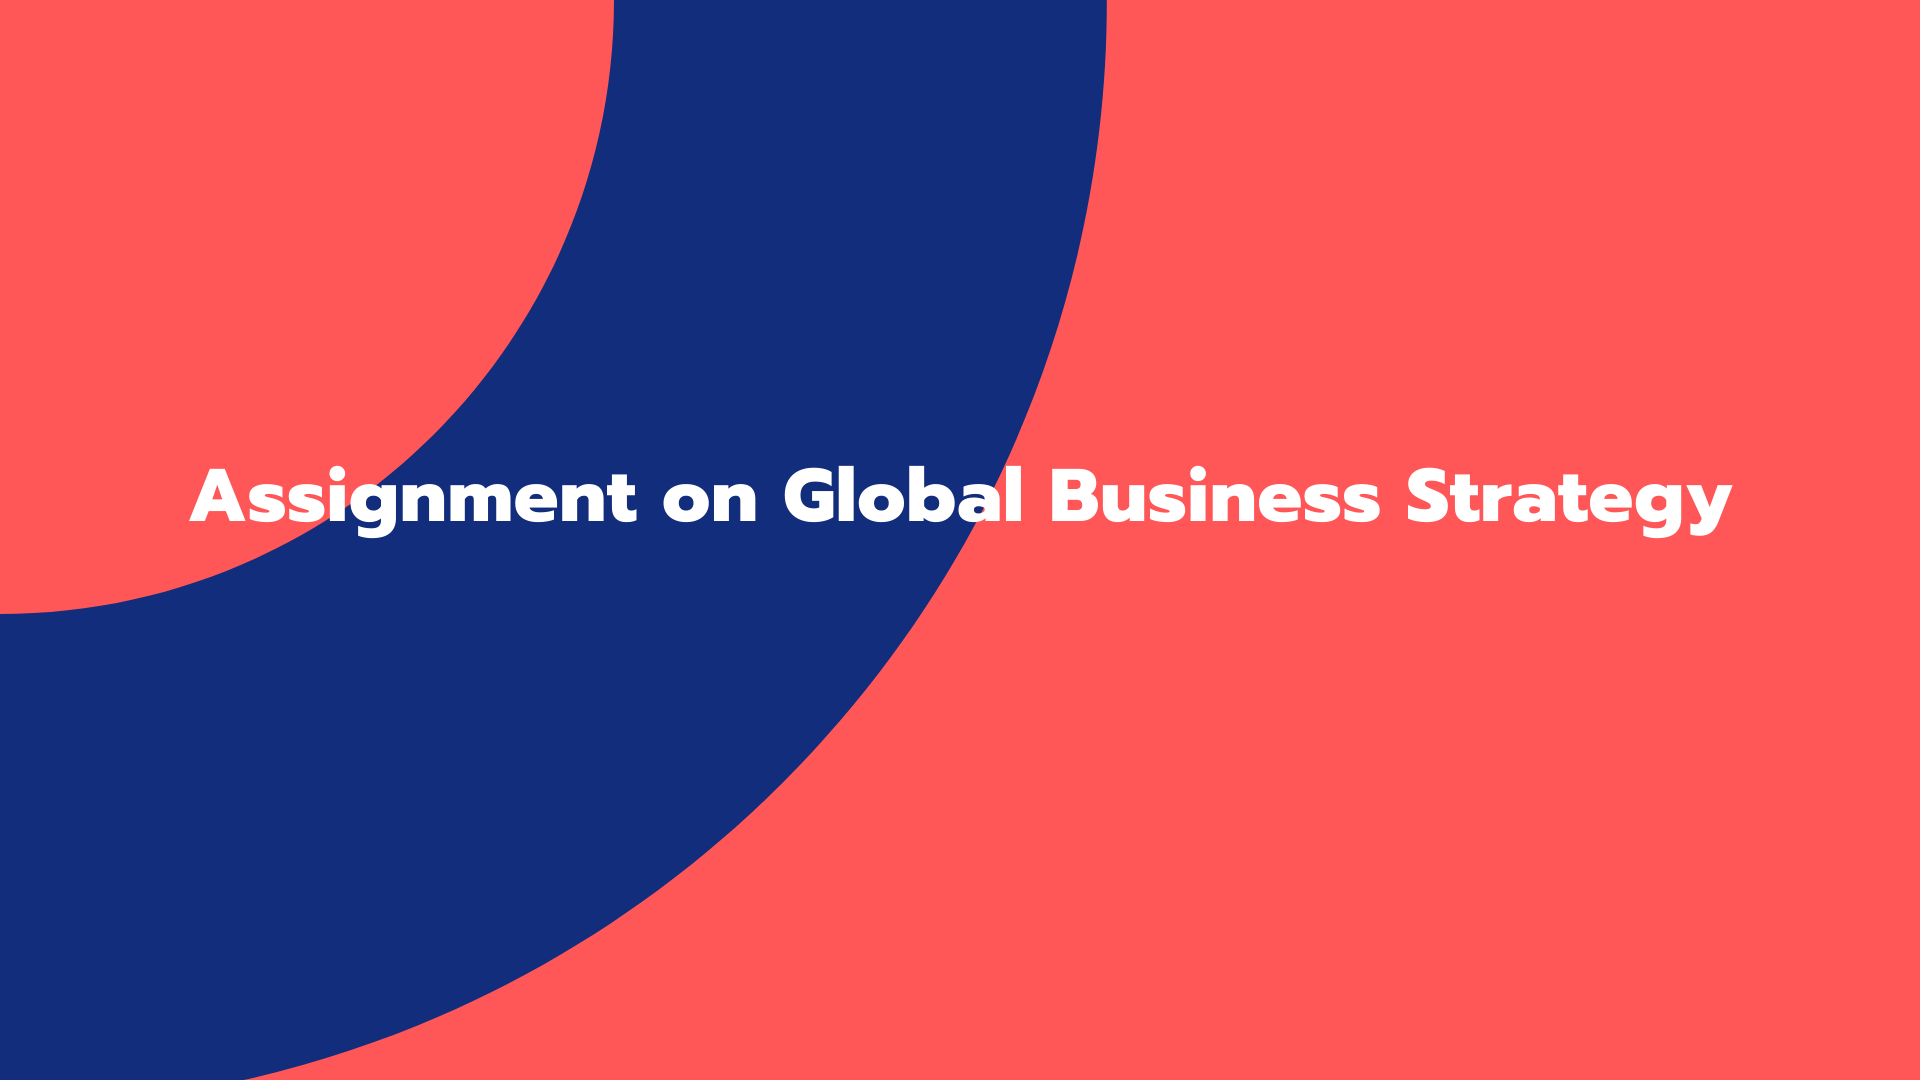 Assignment on Global Business Strategy